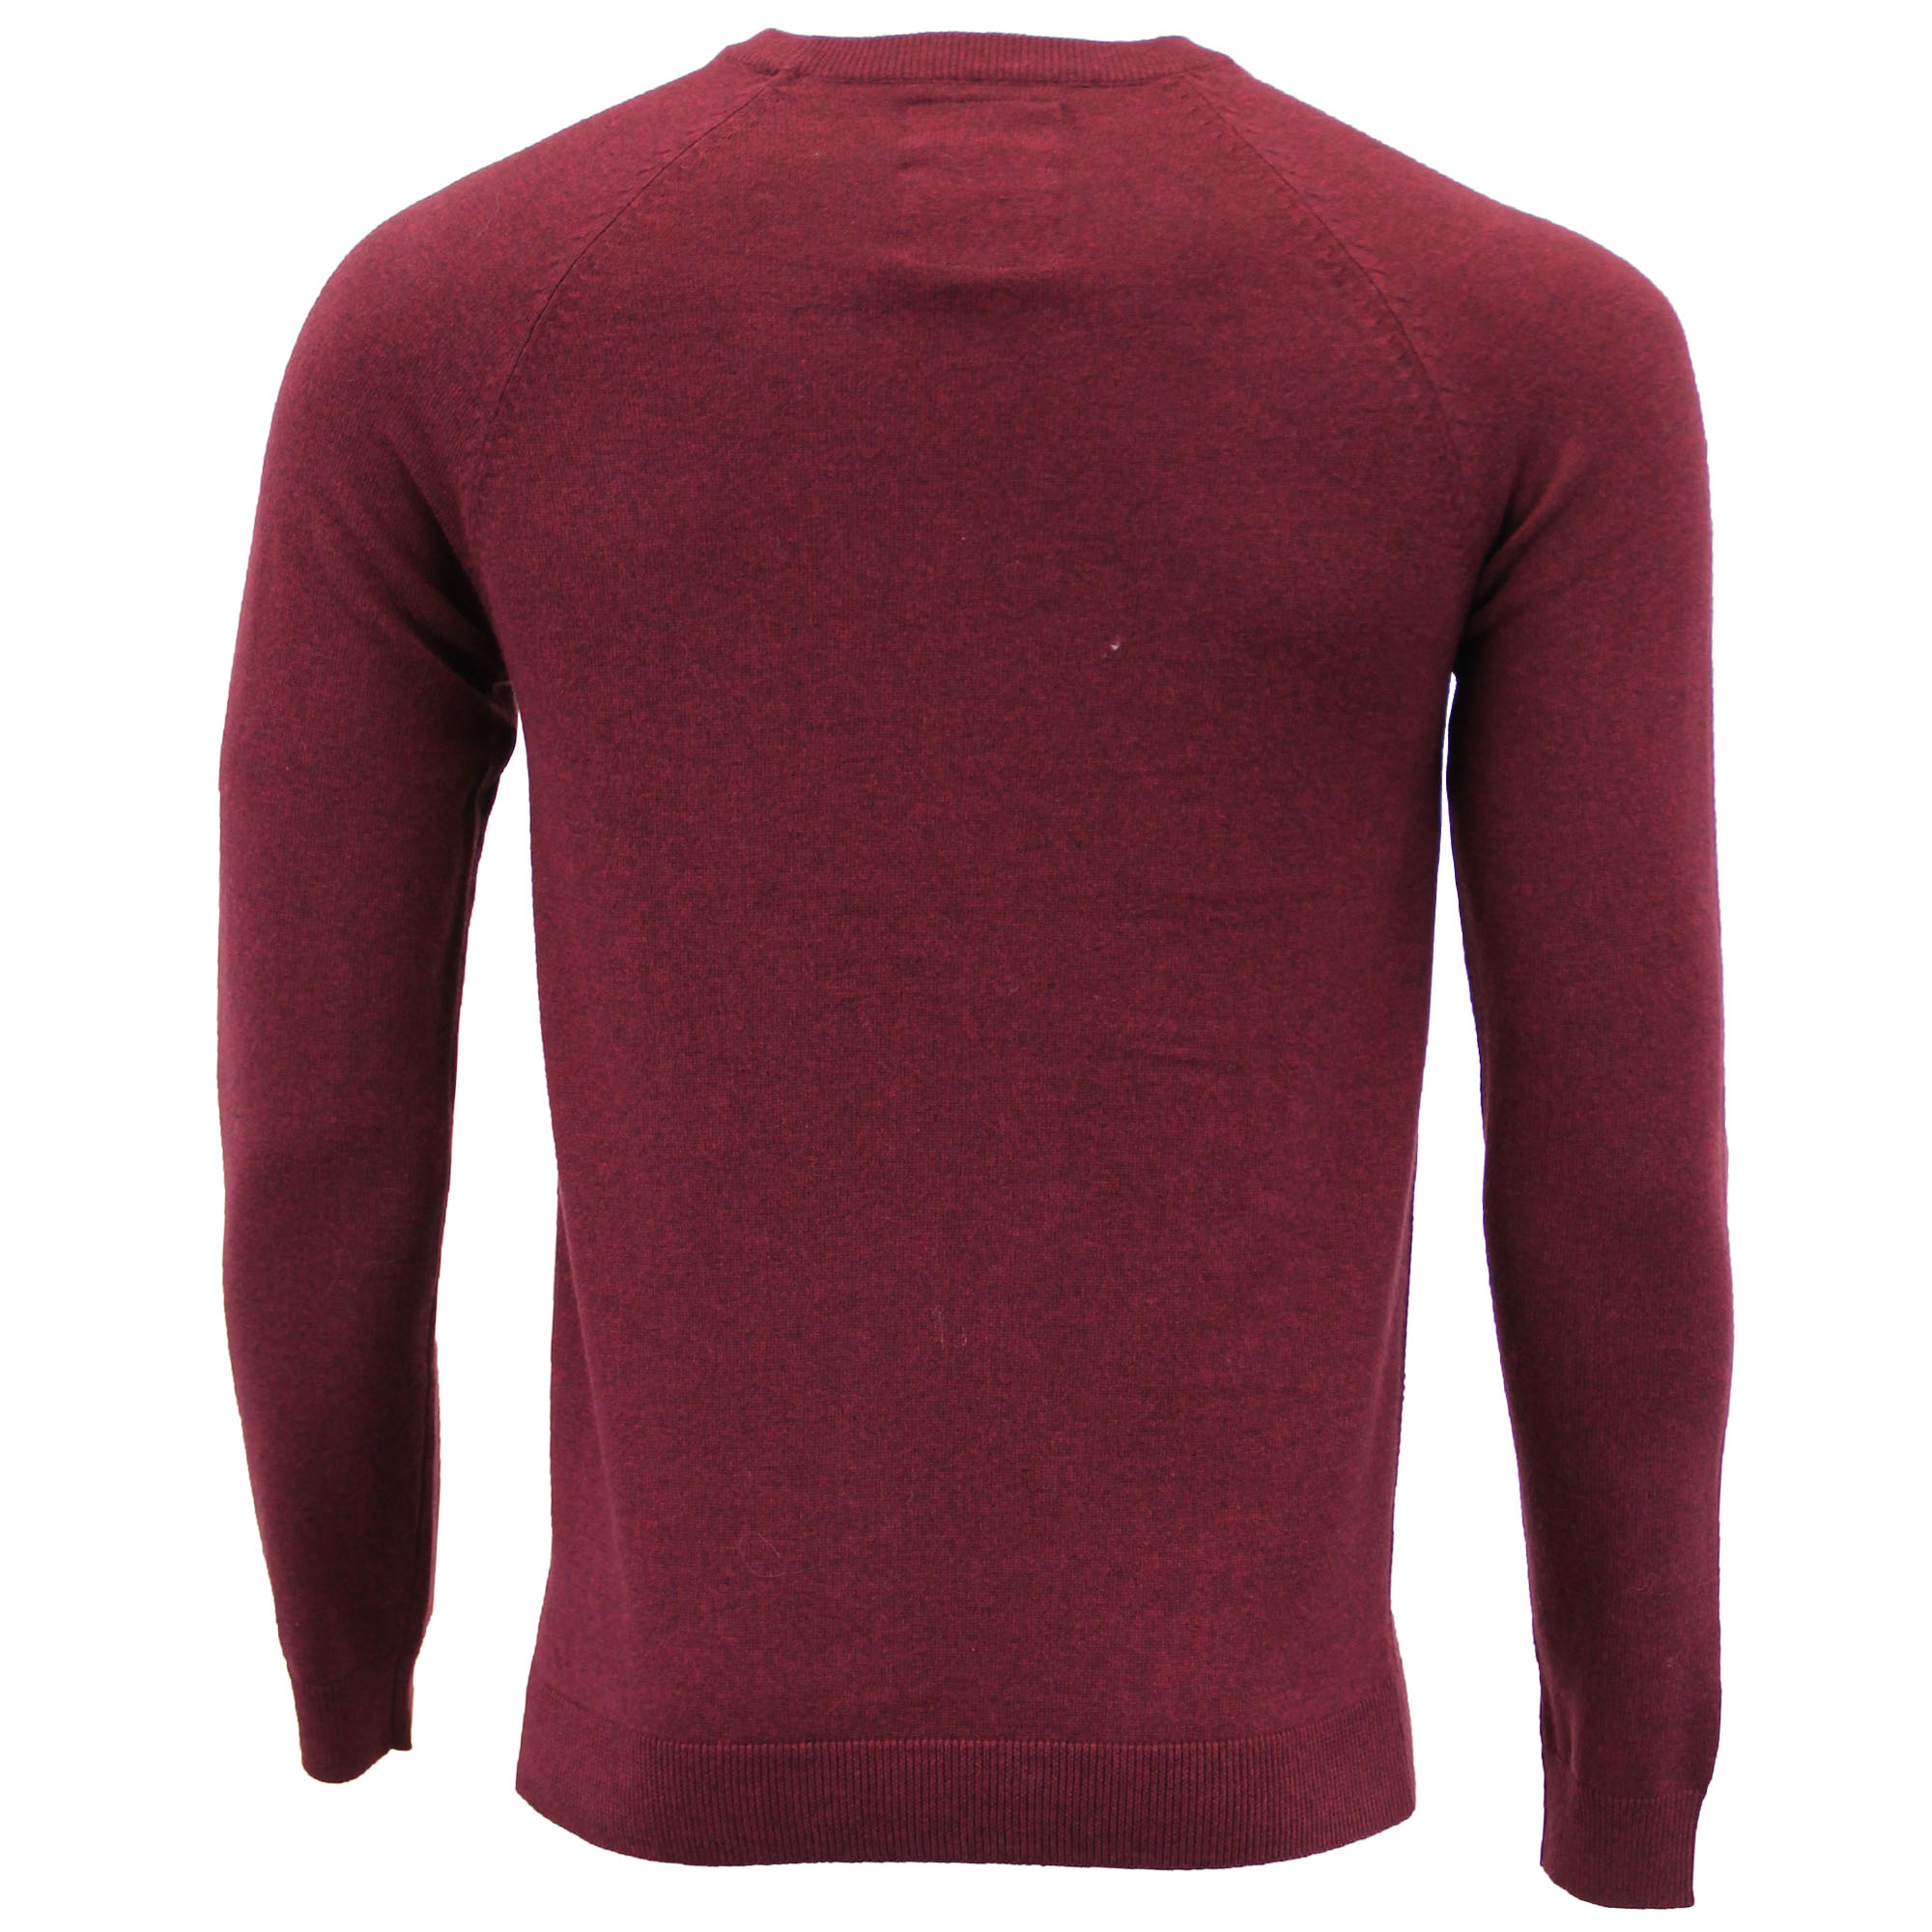 Mens-Jumper-Threadbare-Knitted-Sweater-Pullover-Top-Crew-Neck-Casual-Winter-New thumbnail 3